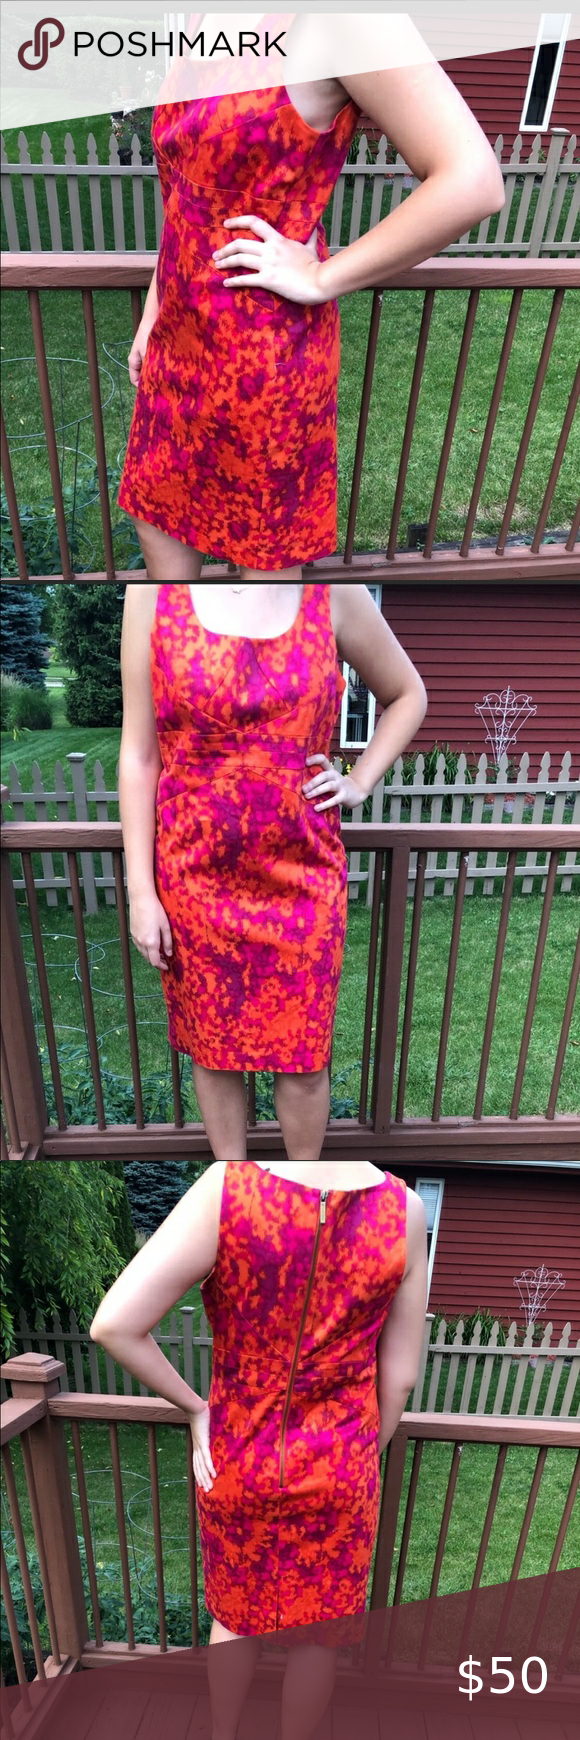 Michael Kors Mother S Da Size 12 Gorgeous Dress The Eyes Will Be On You In Gently Used Condition I Beautiful Red Dresses Hot Pink Dresses Gorgeous Dresses [ 1740 x 580 Pixel ]